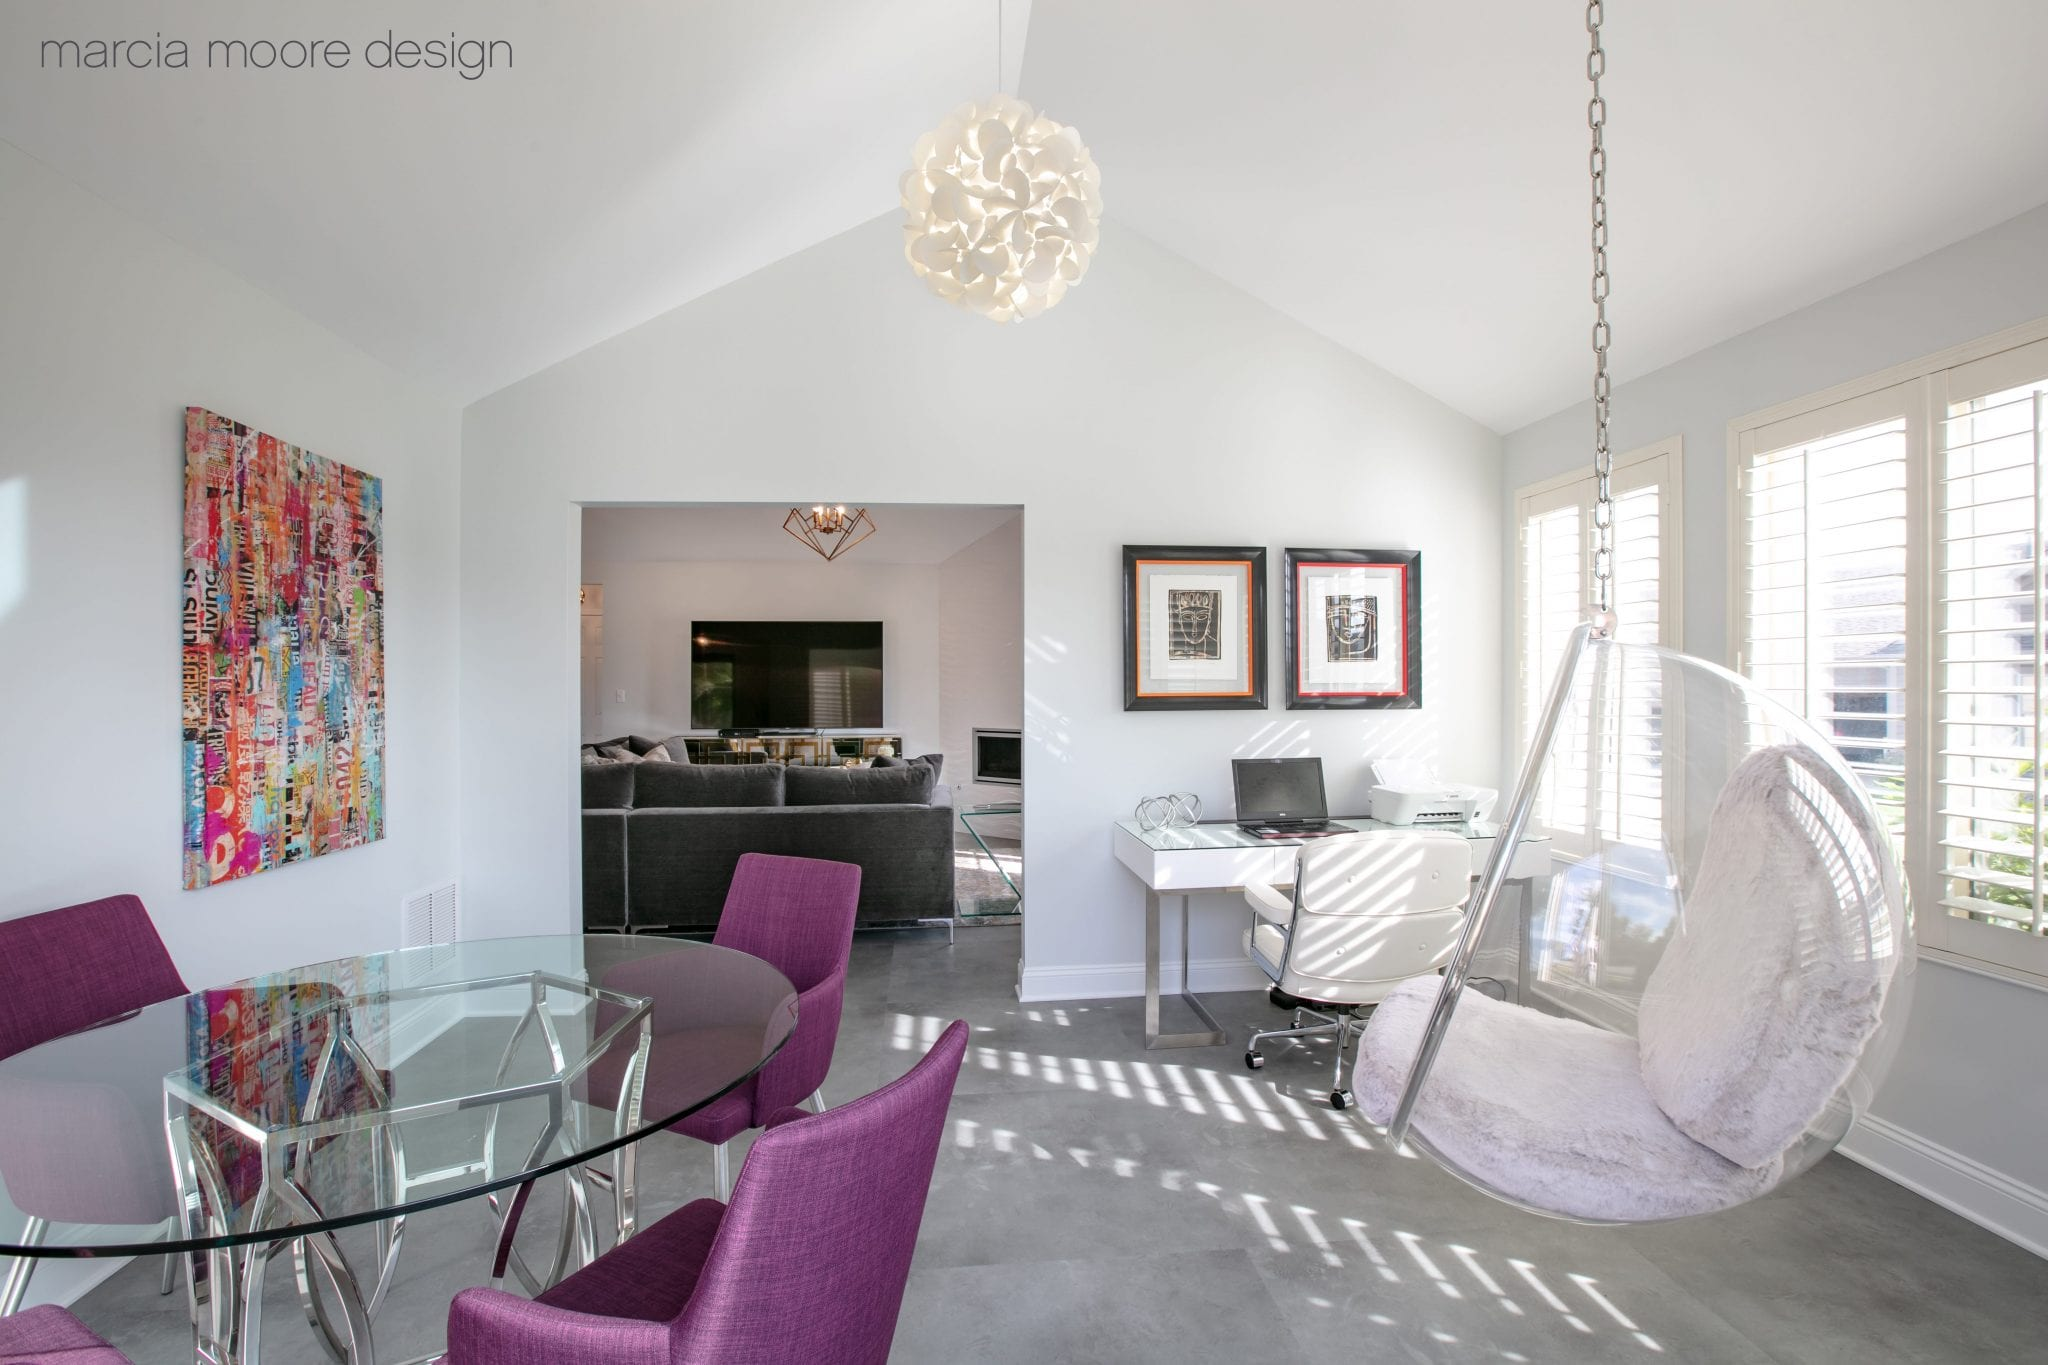 Oval glass-top table with gray base and purple chairs